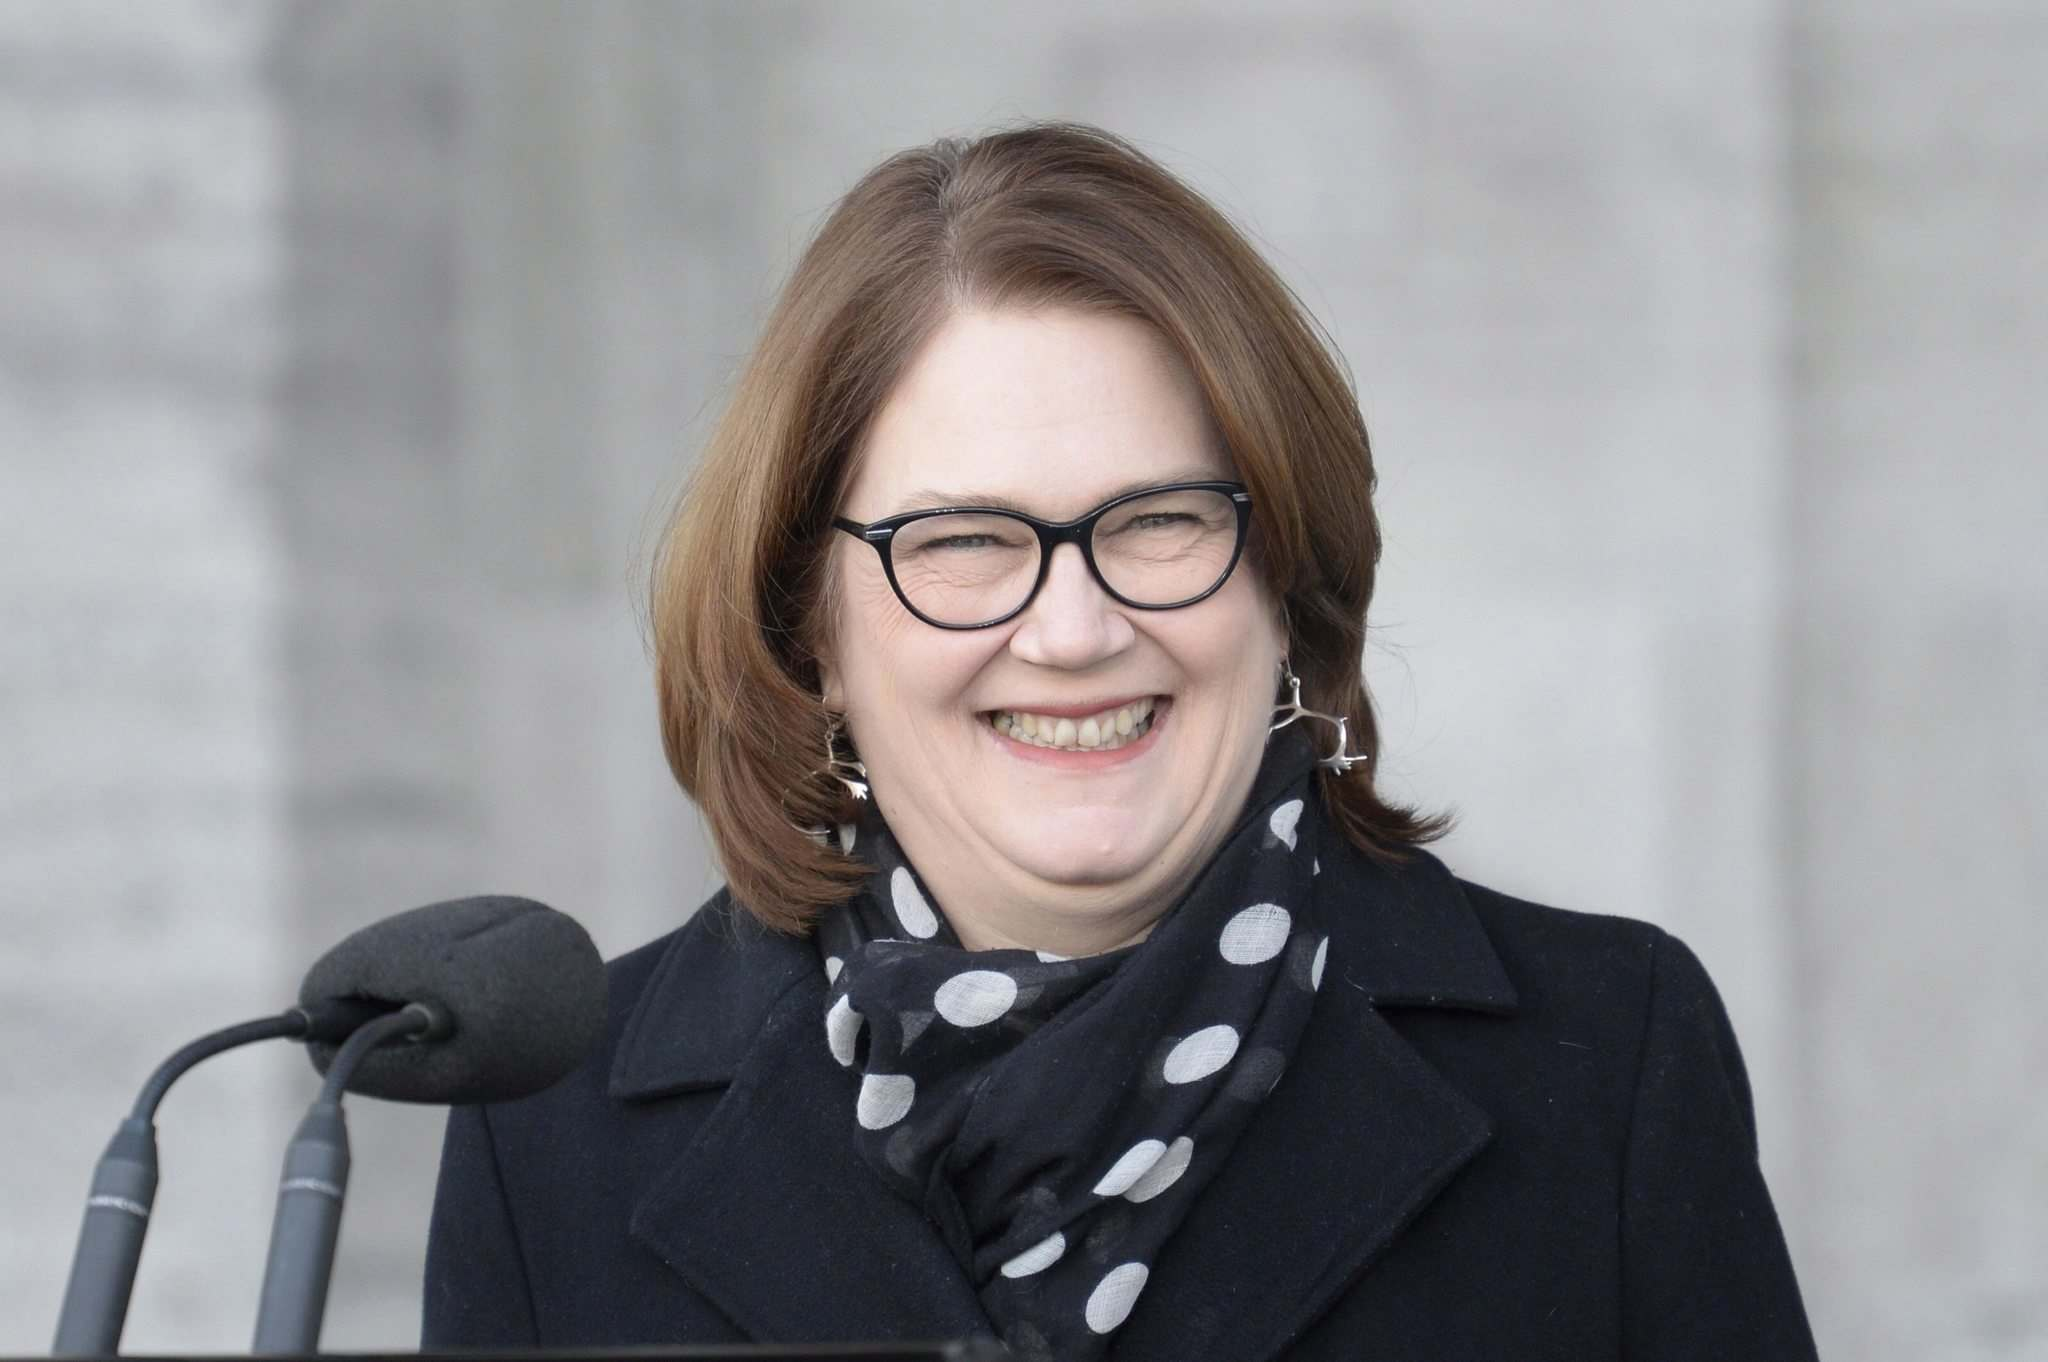 Adrian Wyld / The Canadian Press files</p><p>Independent MP Jane Philpott is a member of Community Mennonite Church in Stouffville, Ont., and served as a missionary doctor in Africa for over 10 years.</p></p></p>